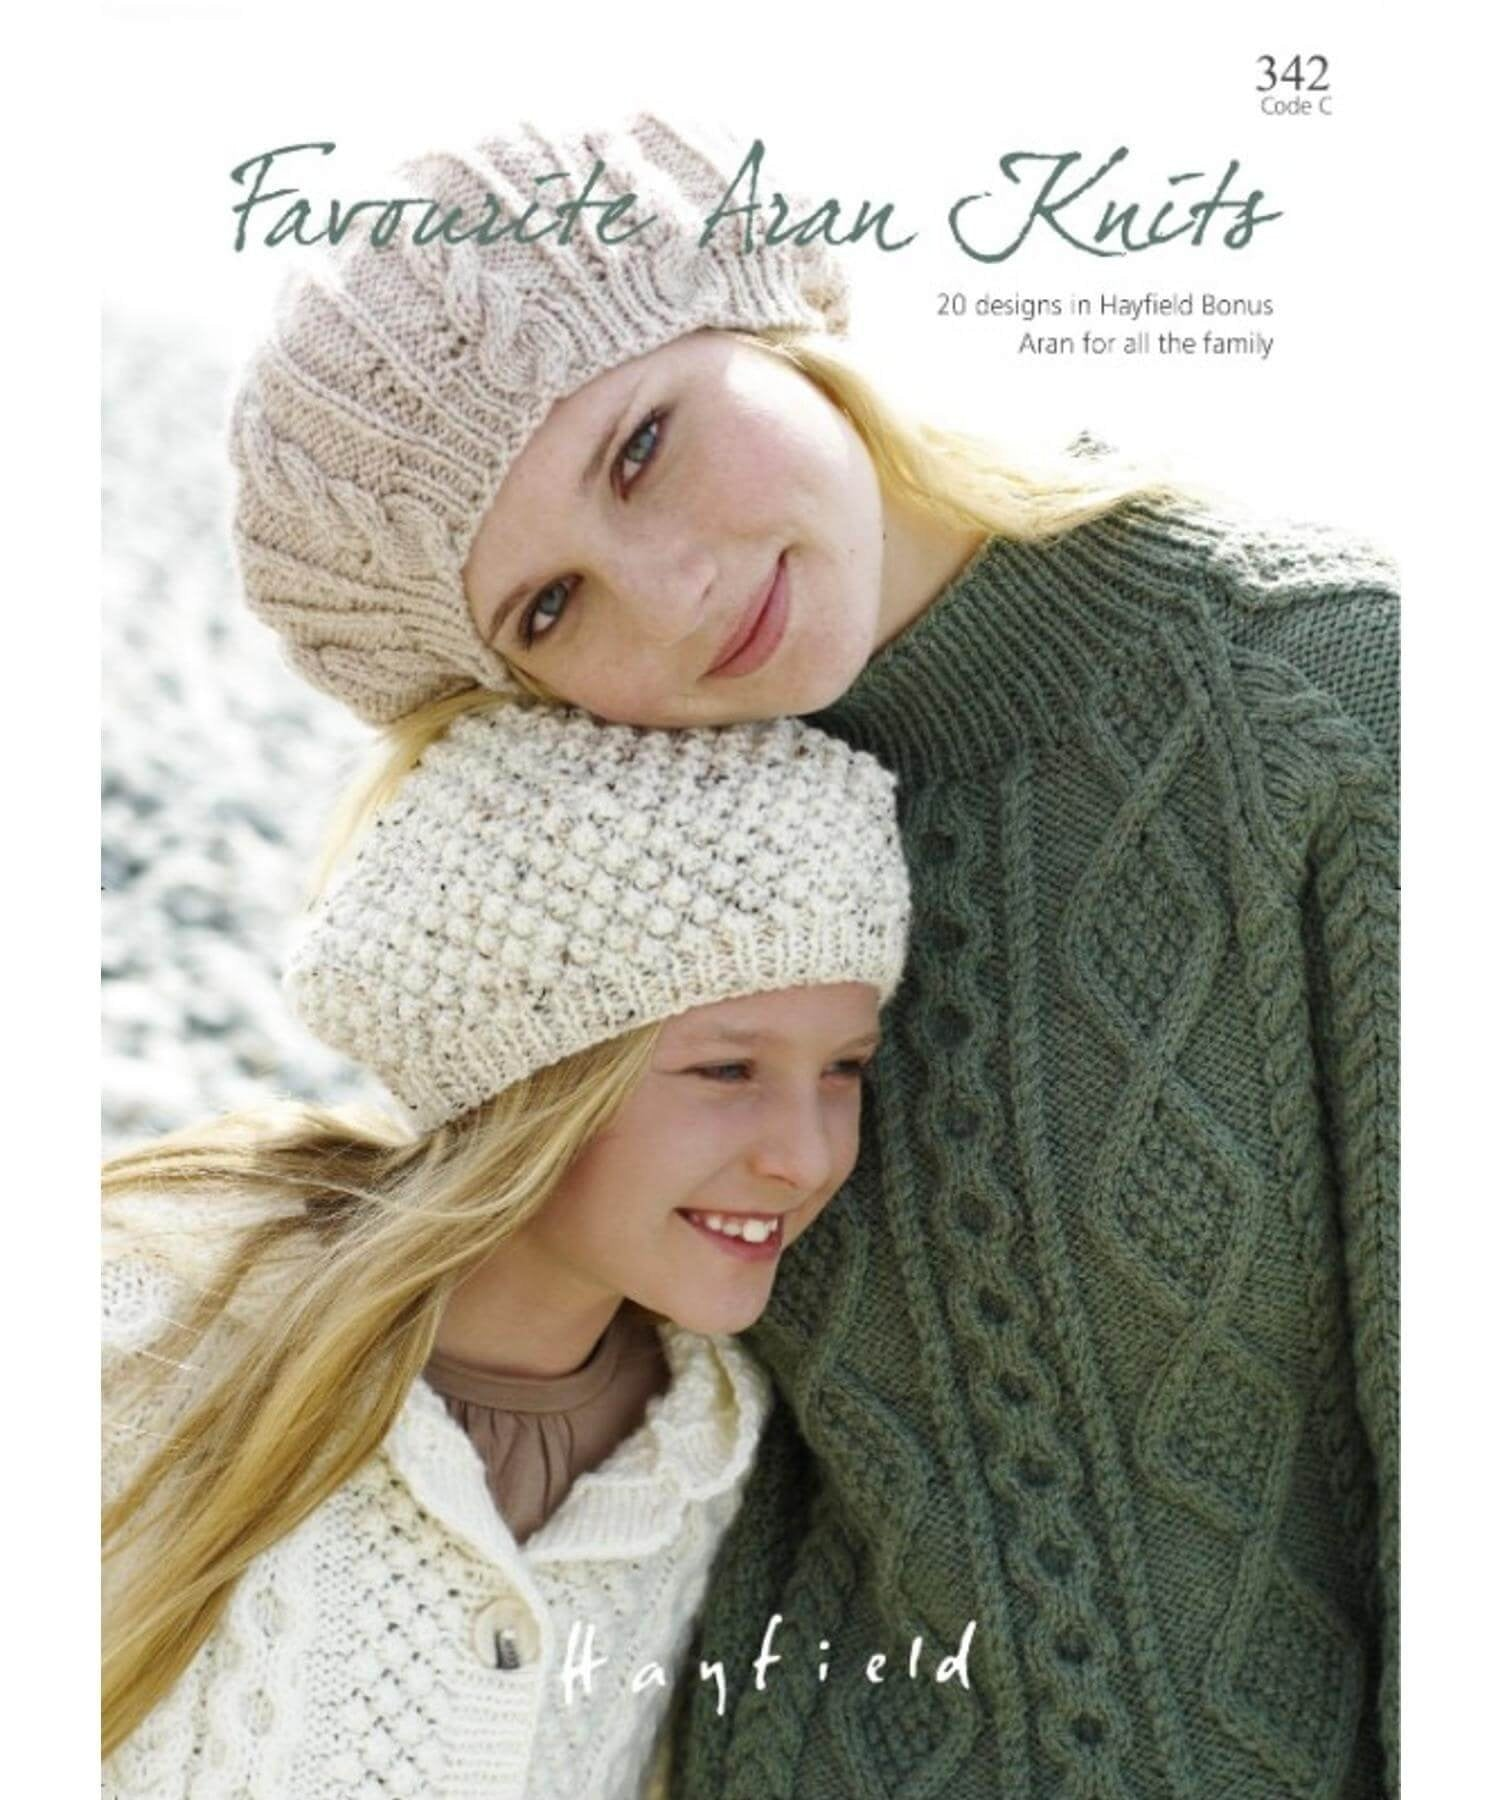 Favourite Aran Knits - Hayfield - [Springwools] - Knitting - Irish Gifts